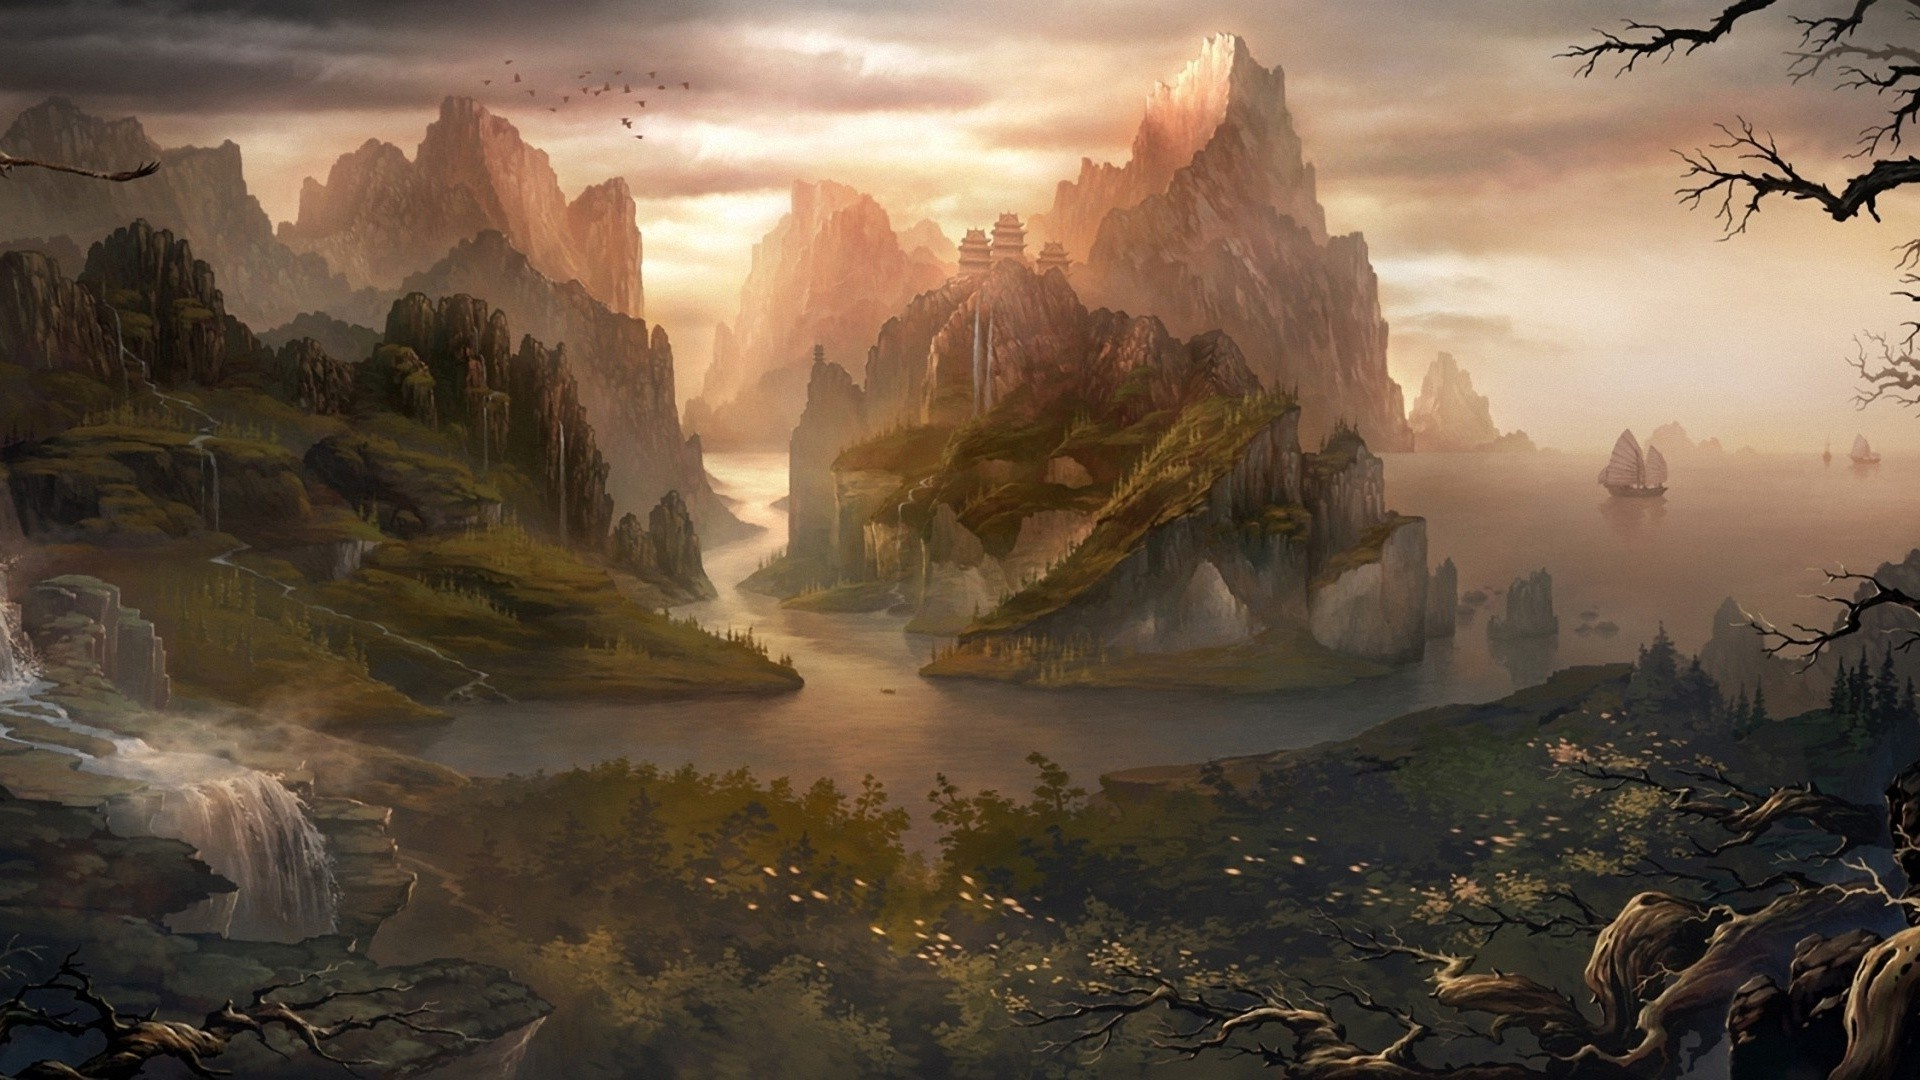 1920x1080 ... Fantasy Landscape Wallpapers HD - HD ...